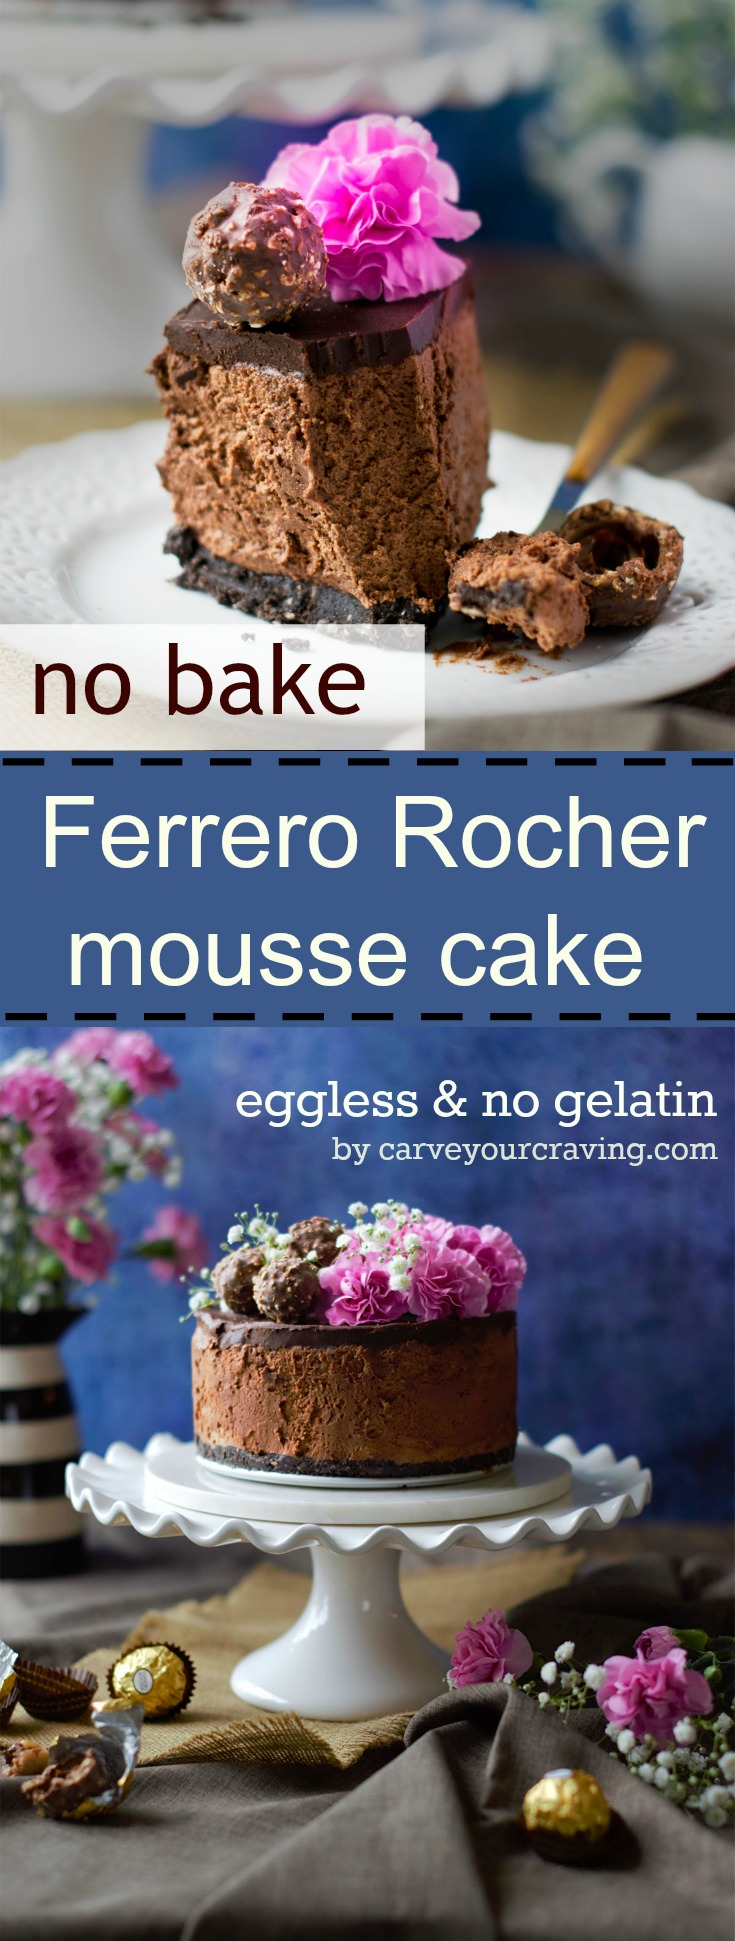 Ferrero Rocher Eggless Cake Recipe